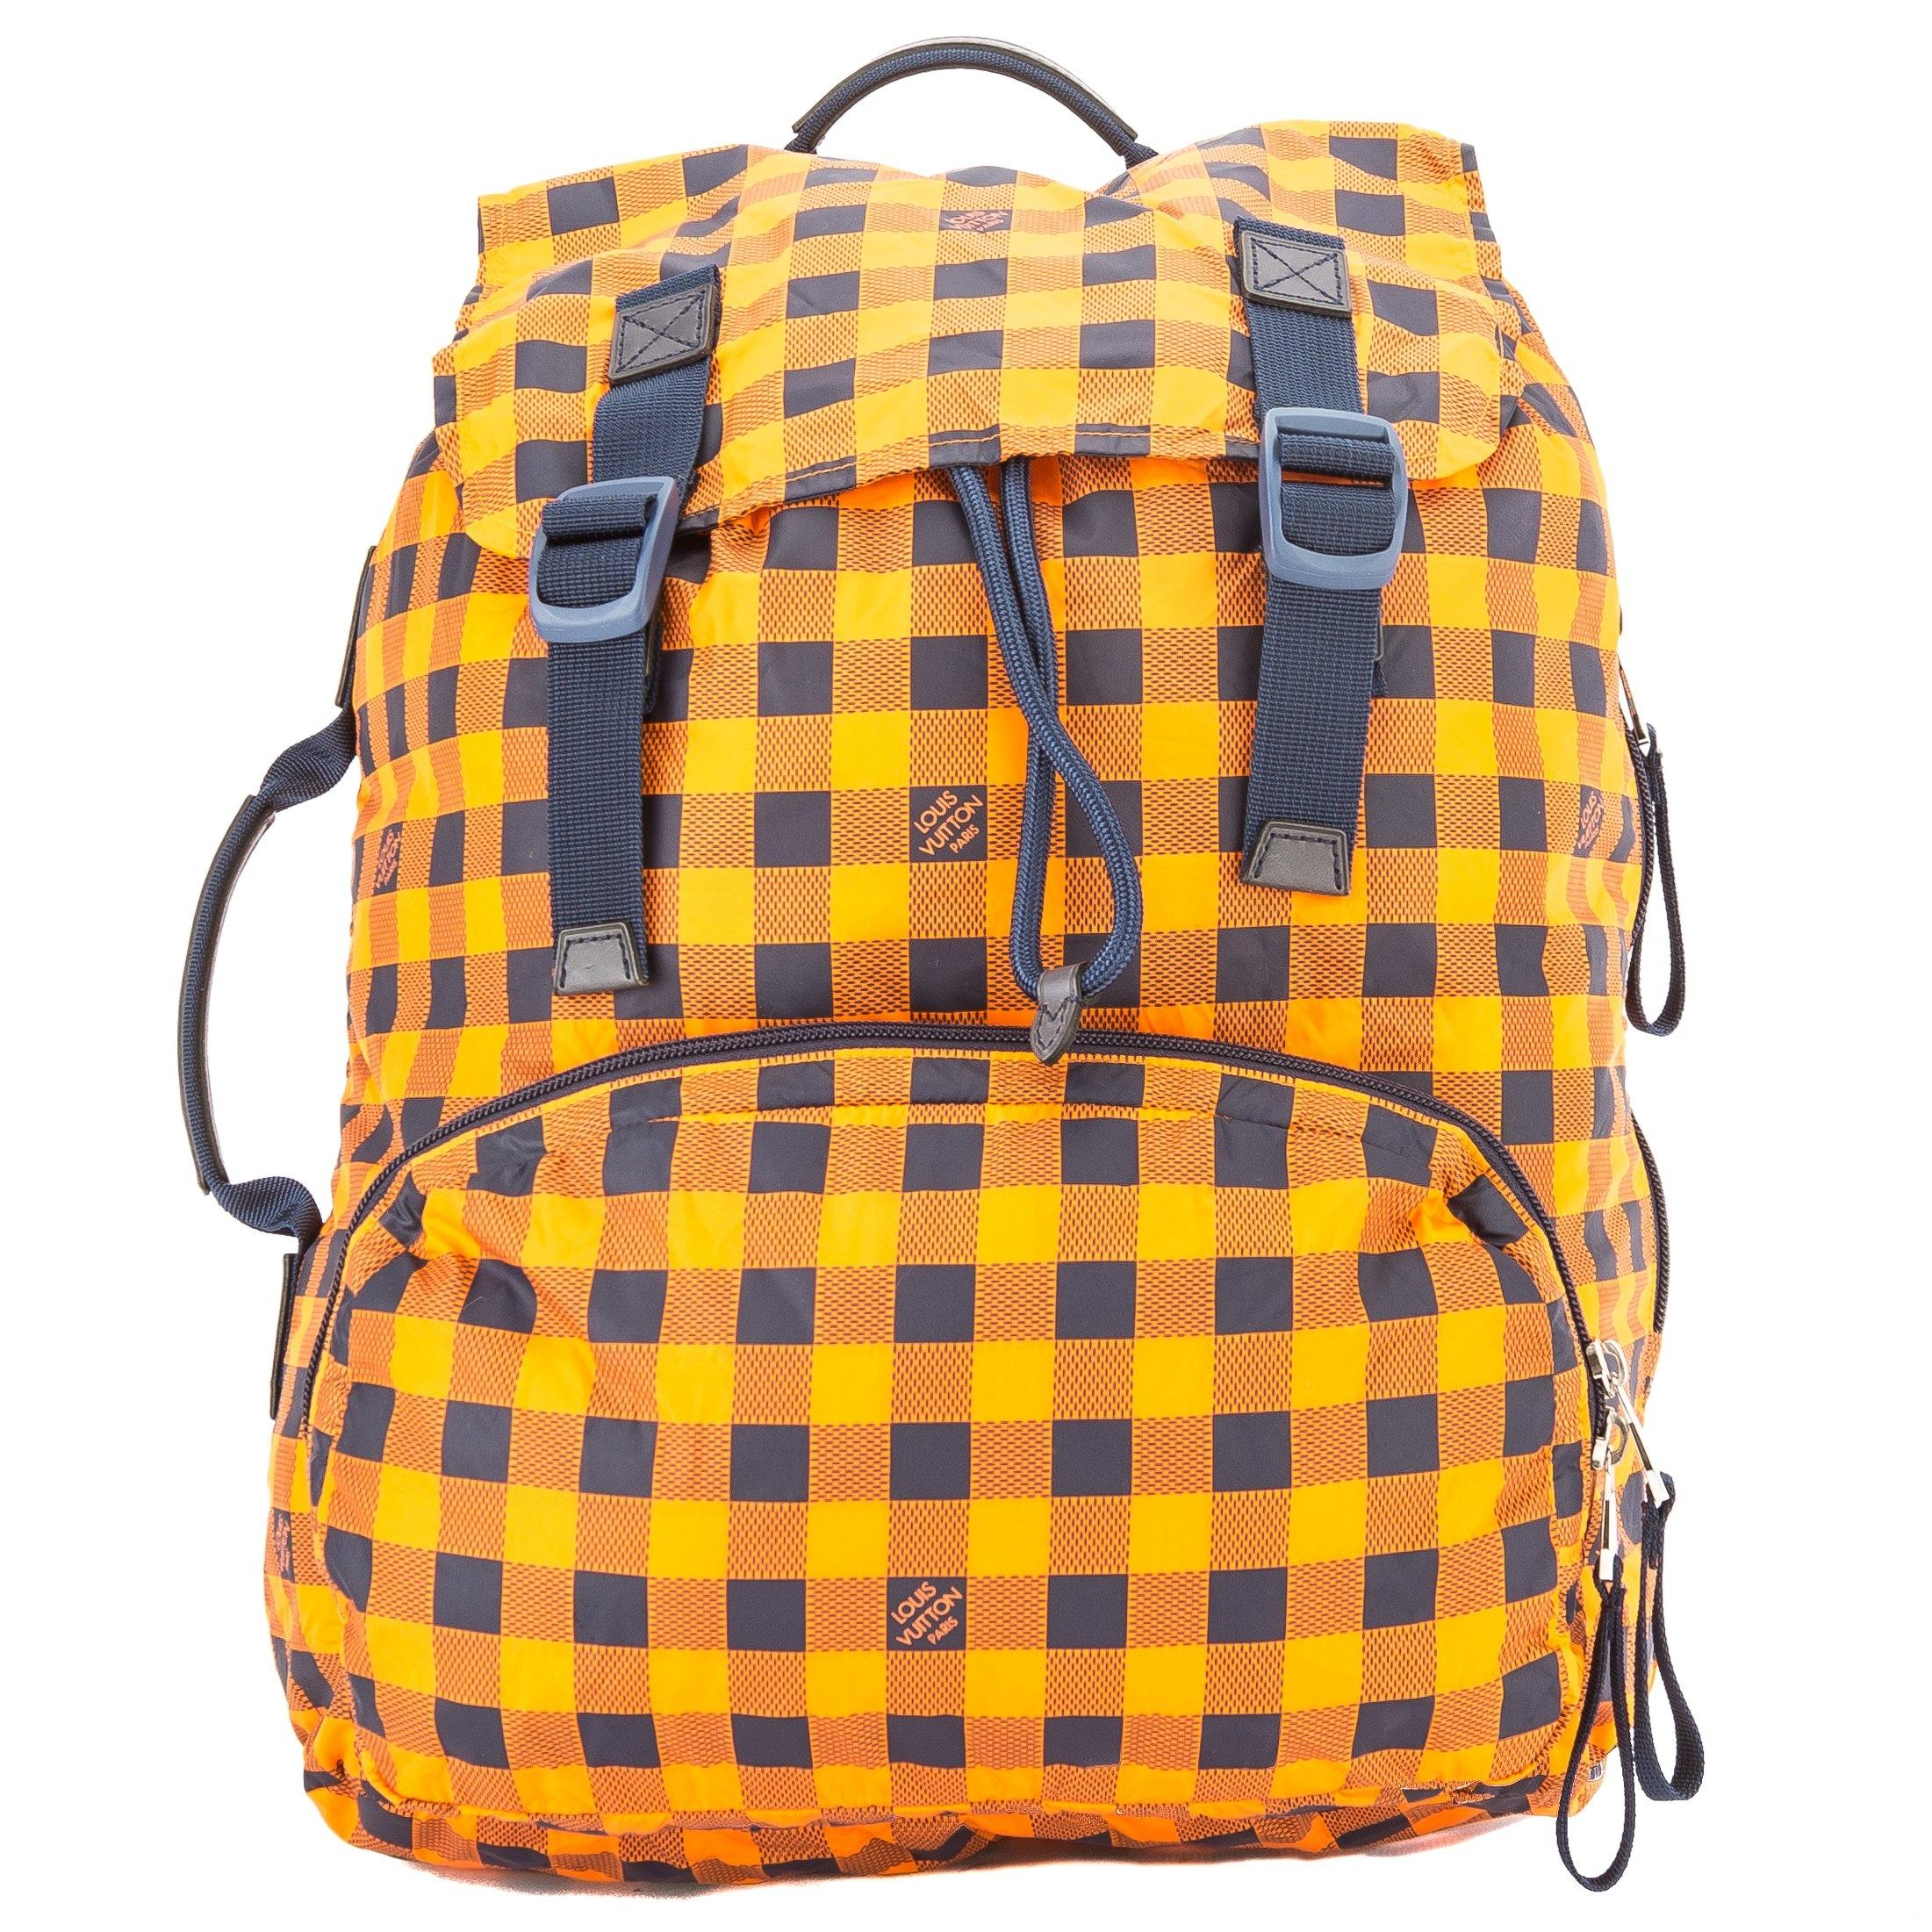 Louis Vuitton Orange And Black Canvas Damier Adventure Backpack q65oFS6If